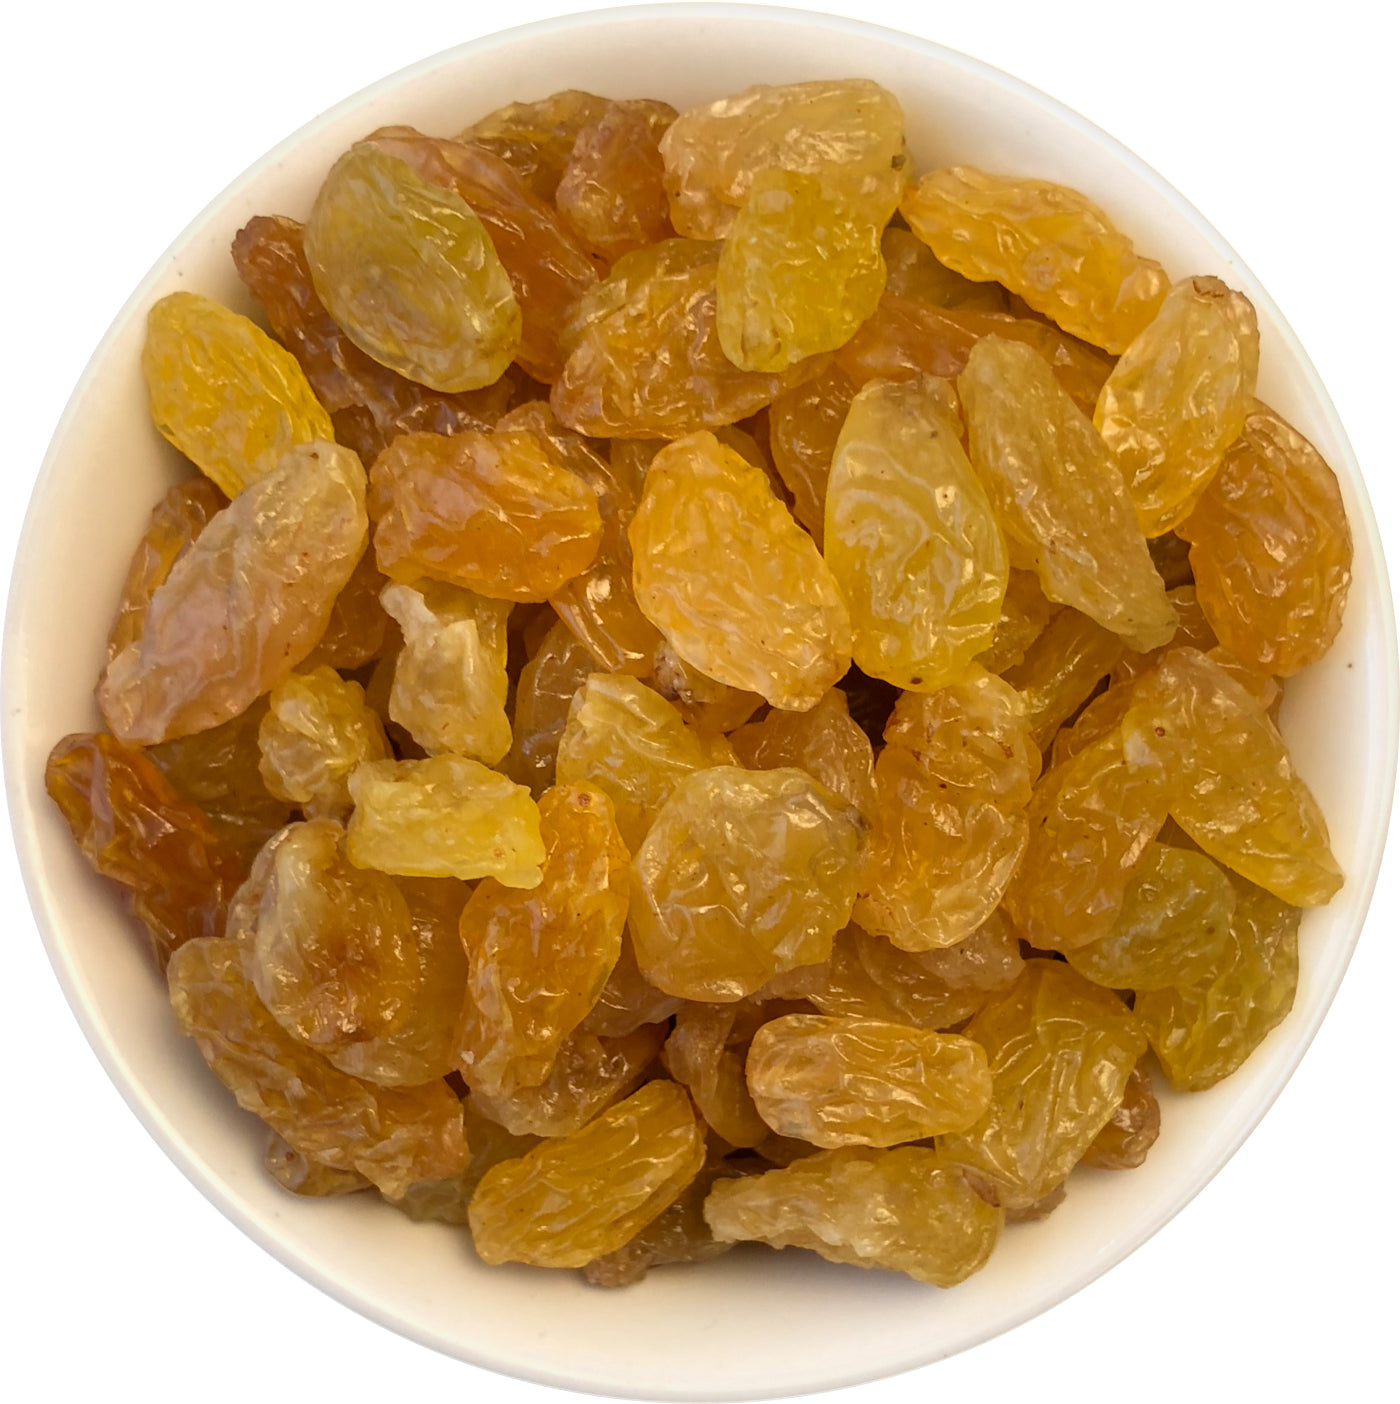 Raisins - Jumbo Chilean Golden